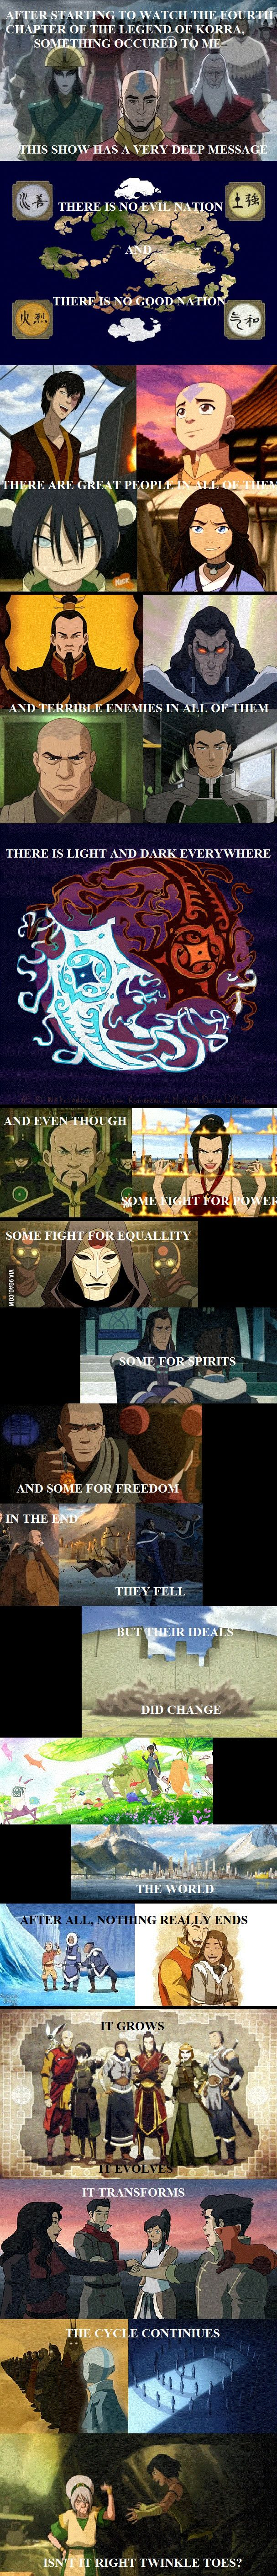 "one of the reasons i love the show is just how complex it truly is. It does a great job of showing different points of view. Most of the ""bad guys"" aren't bad, they are flawed people and you can disagree with them. best written series (ATLA & LOK)."